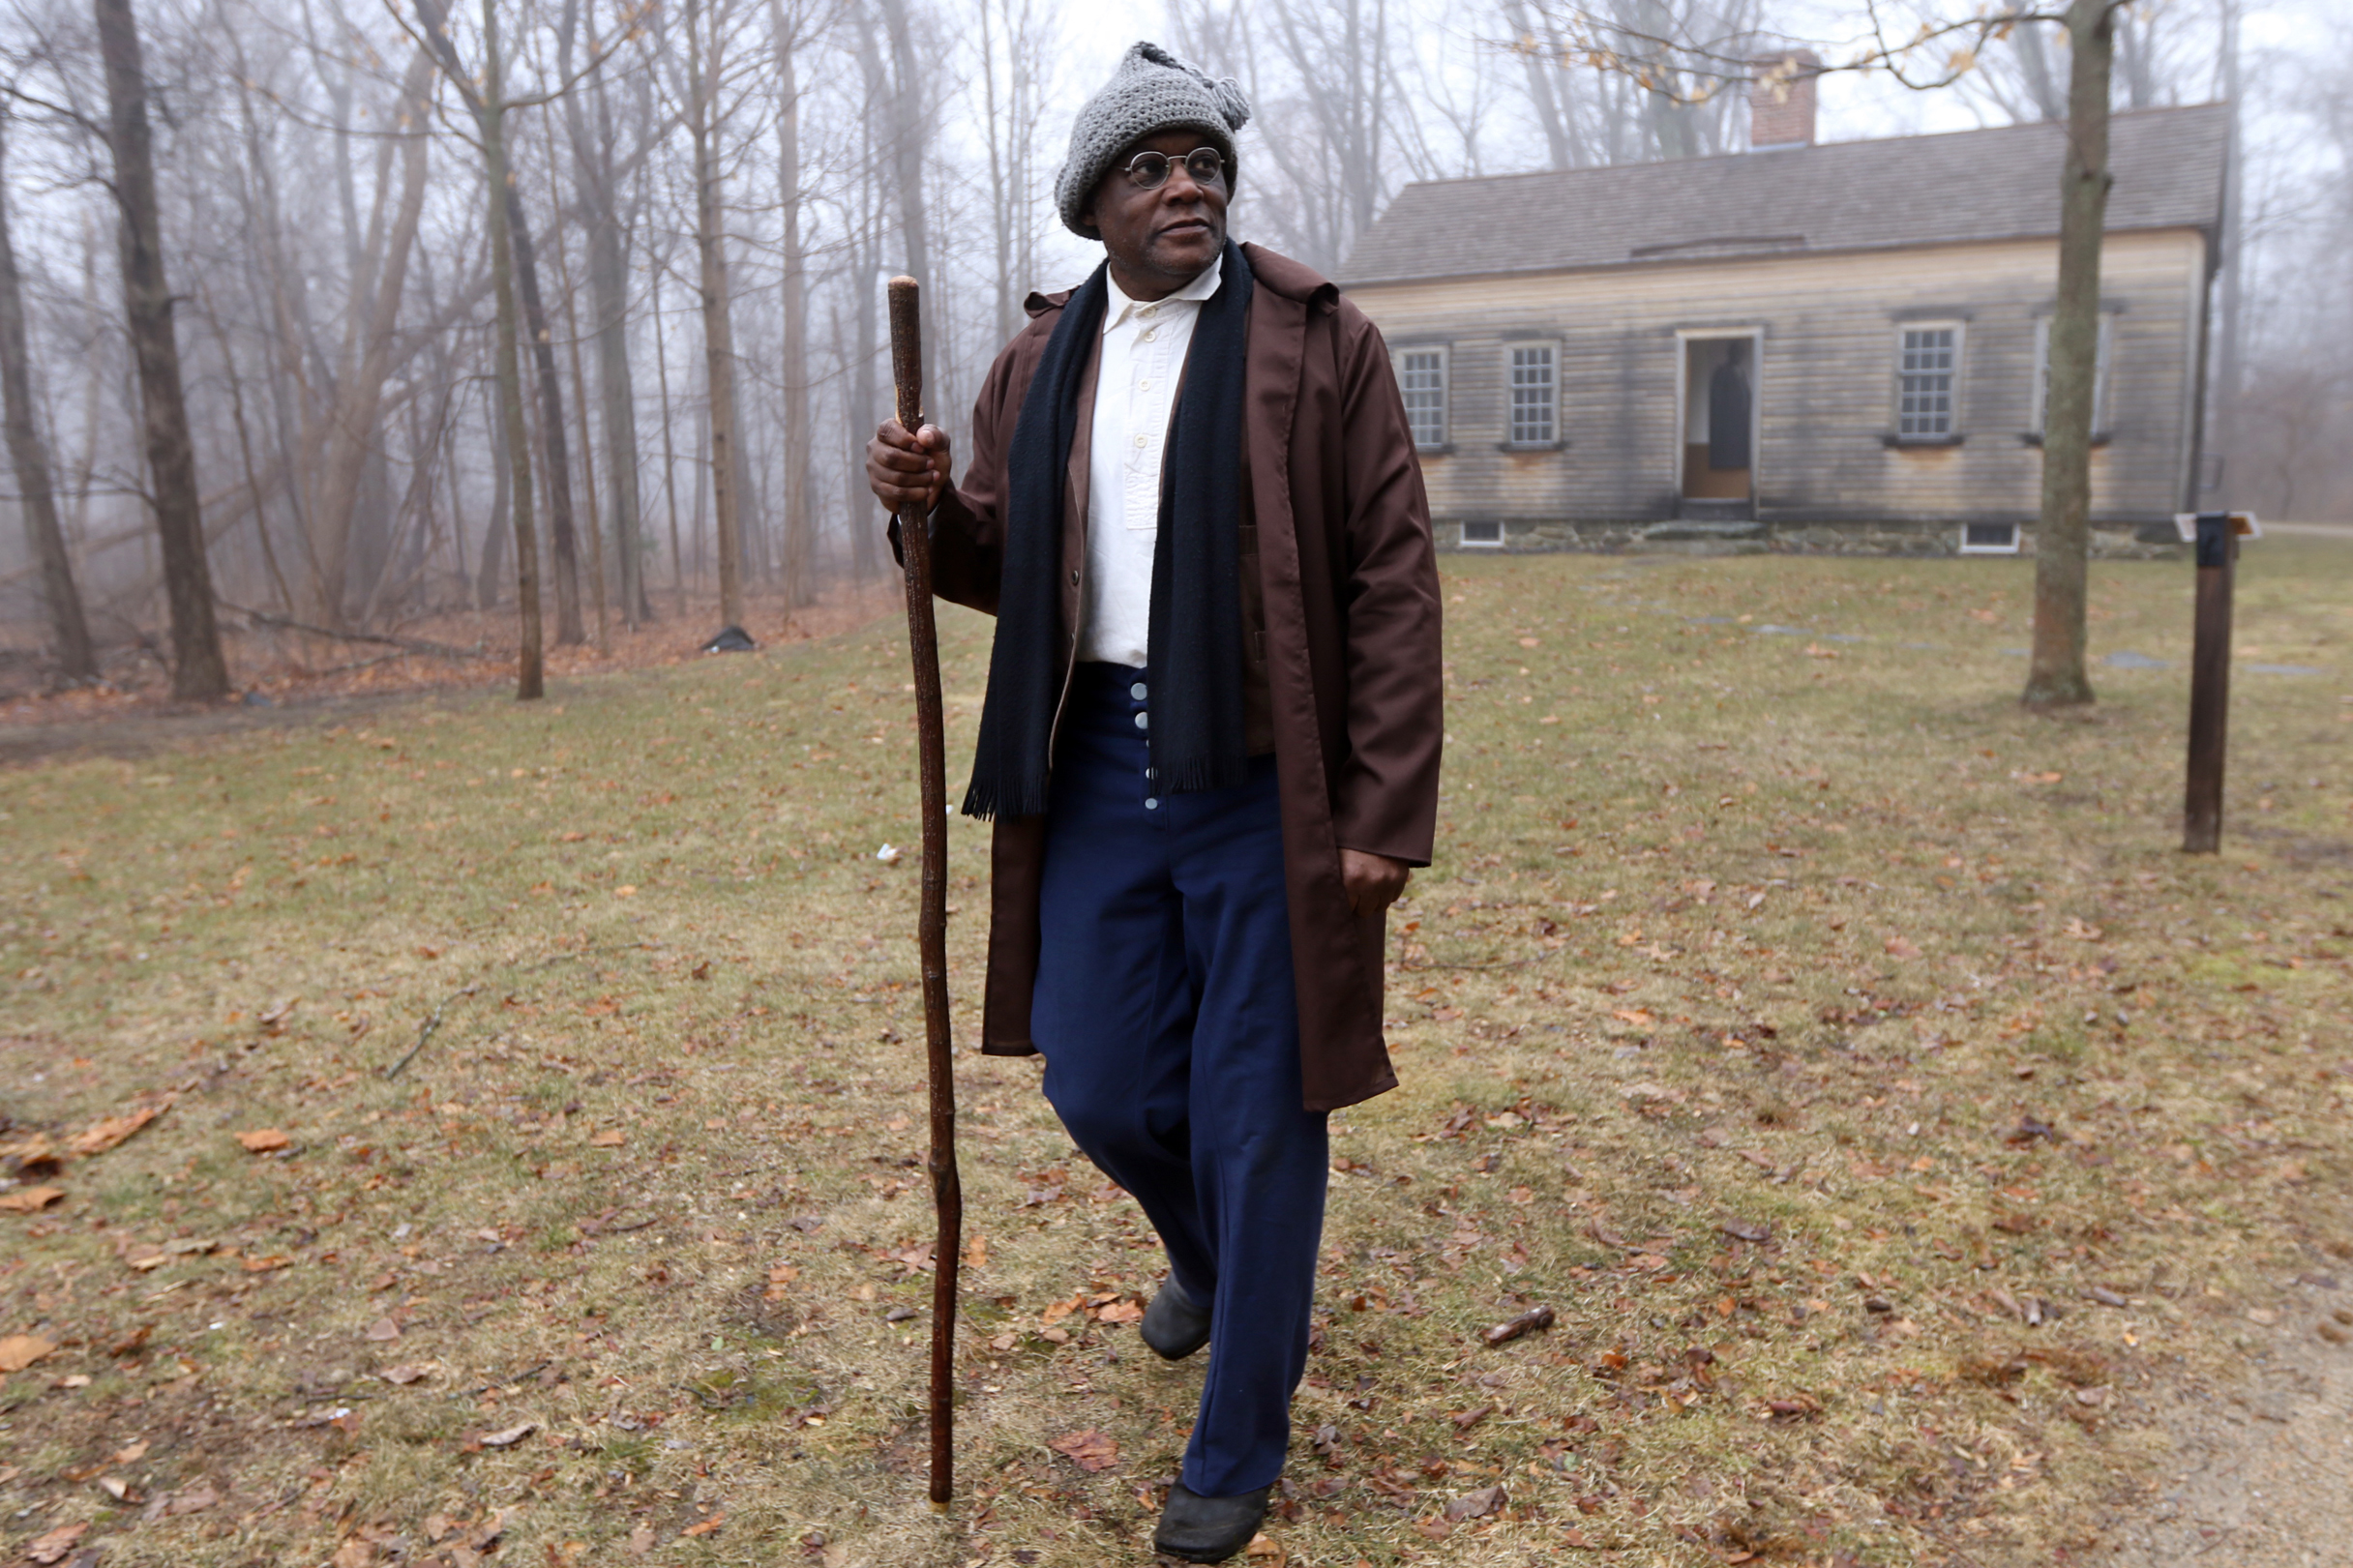 Joe Zellner, of Bedford, portraying Peter Robbins, walks out from the Robbins House in Concord to greet his audience Friday, Feb. 16, 2018. Students from Greenfield Commonwealth Virtual School went to the house to learn about the families who lived there and Concord's African American history. [Wicked Local Staff Photo/Ann Ringwood]